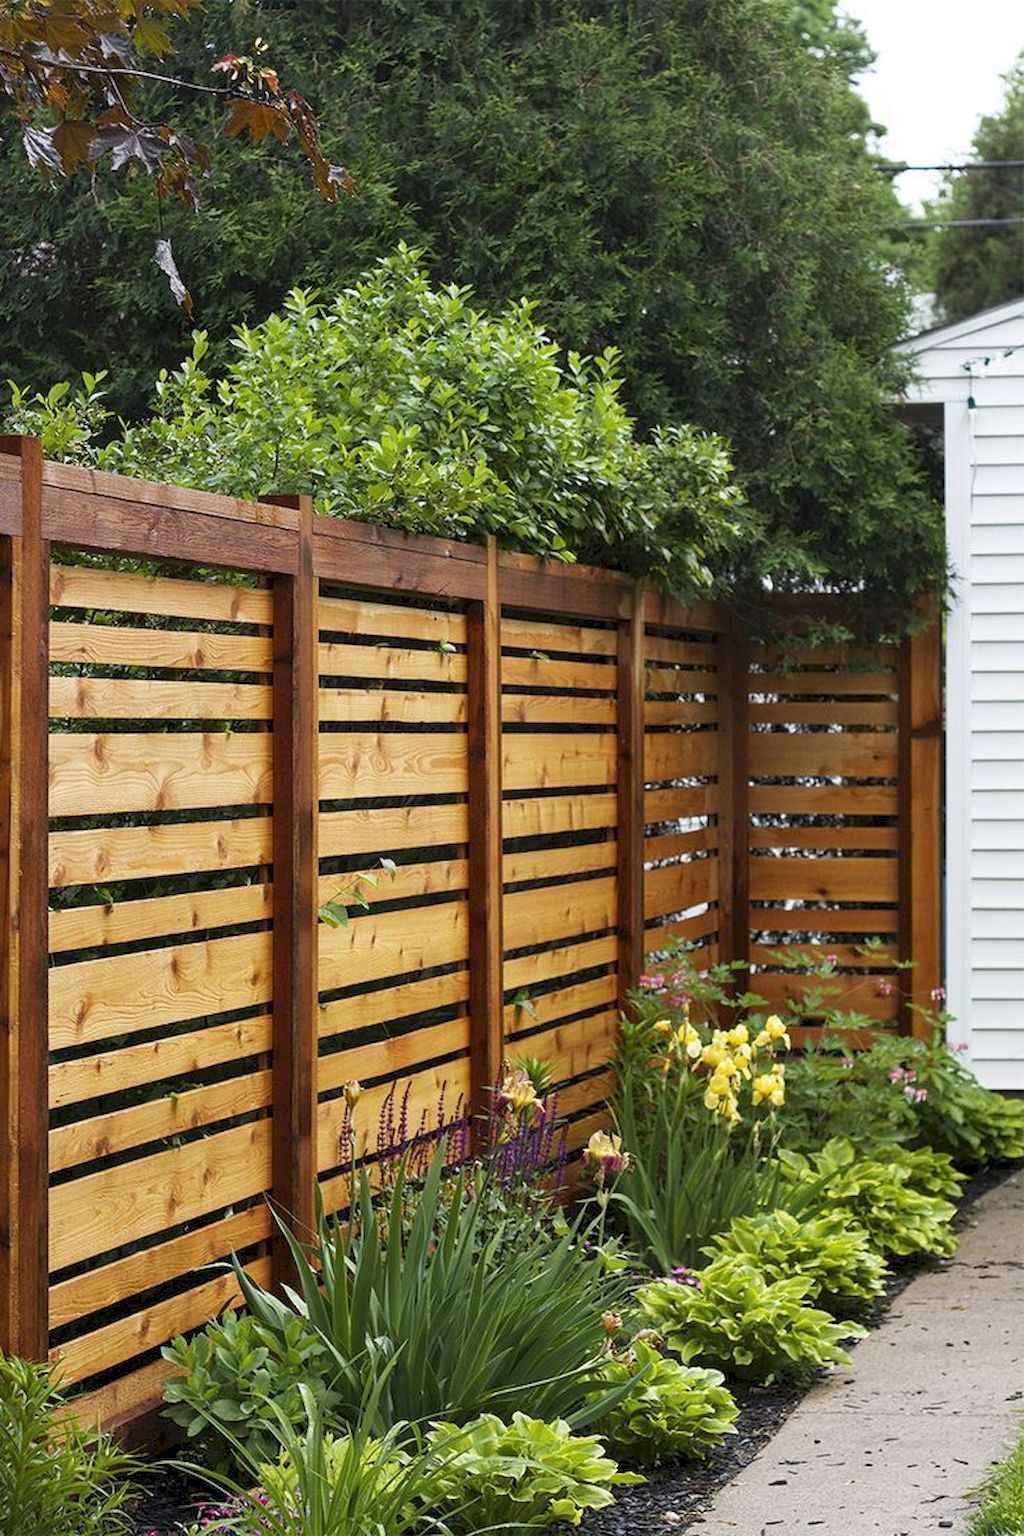 75 Affordable Backyard Privacy Fence Design Ideas Privacy Fence Designs Backyard Fences Privacy Fence Decorations